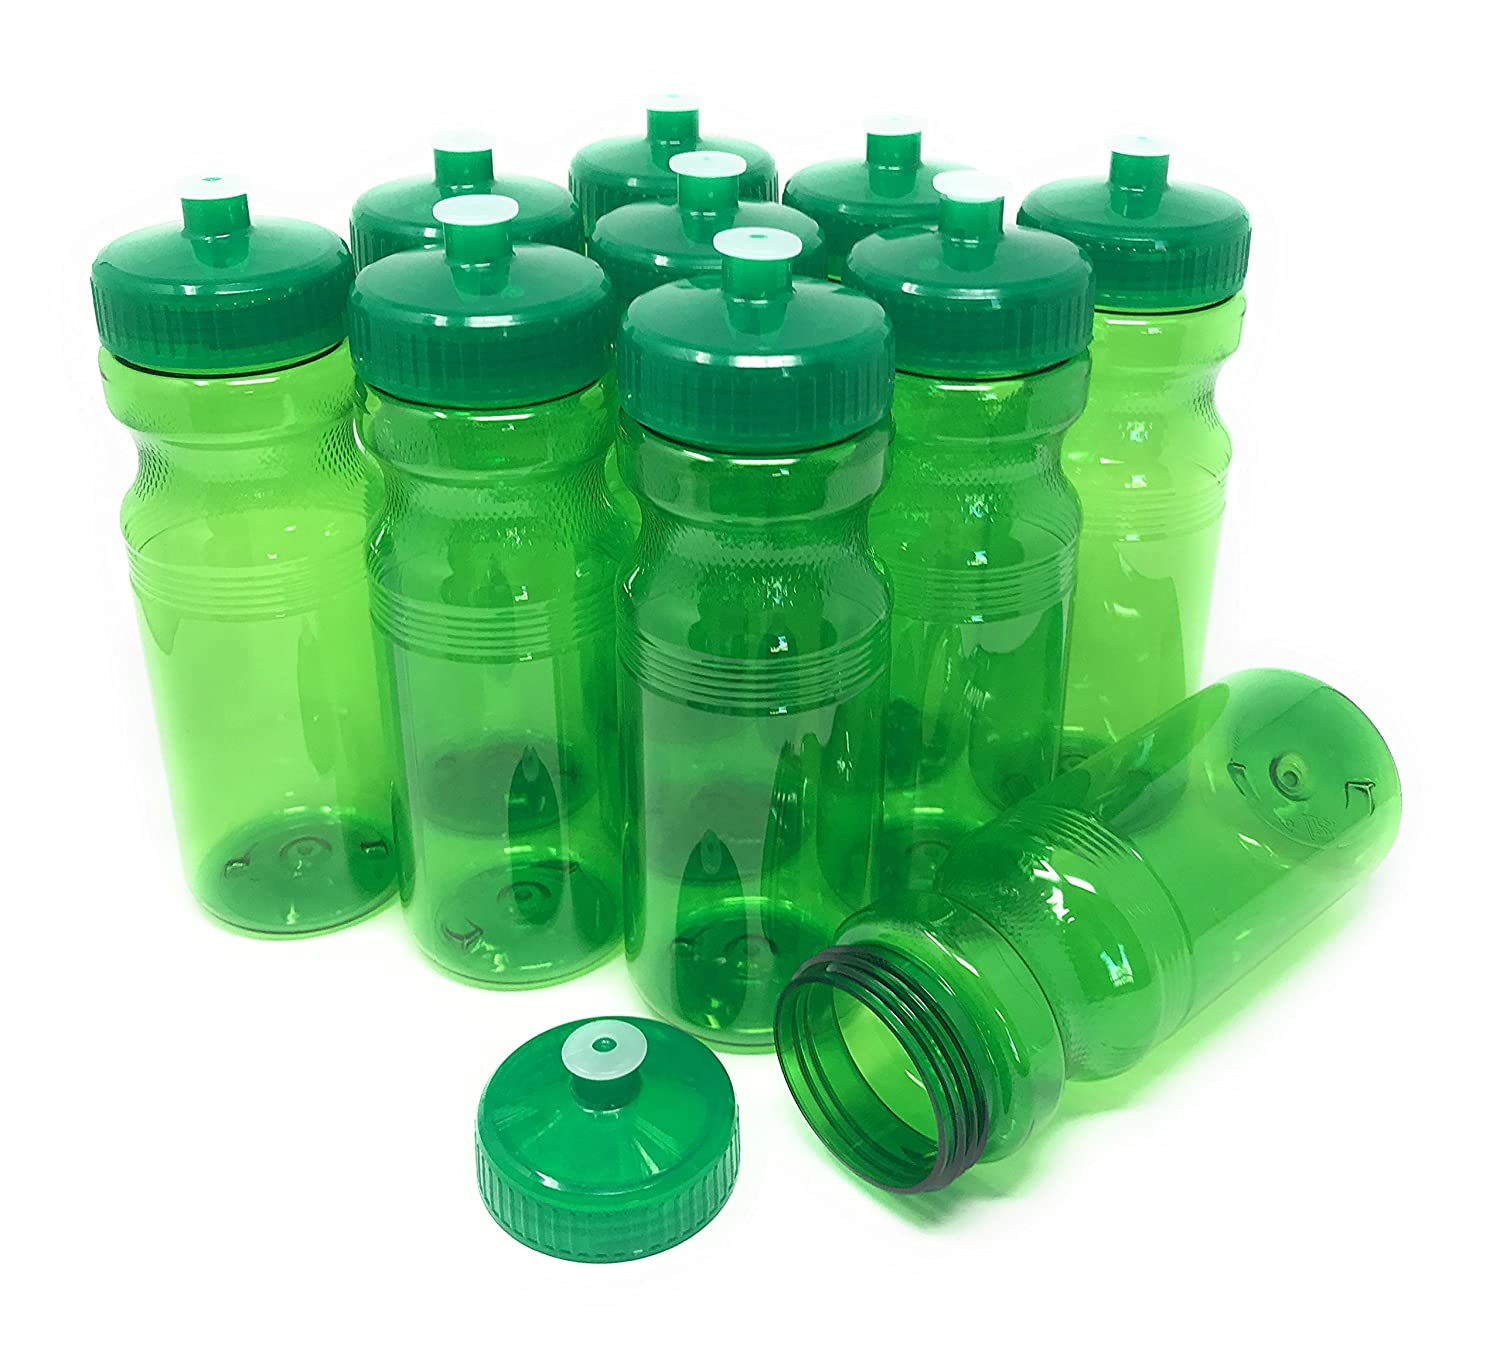 CSBD Blank 24 oz Sports and Fitness Water Bottles BPA Free PET Plastic Made in USA Bulk 10 Pack